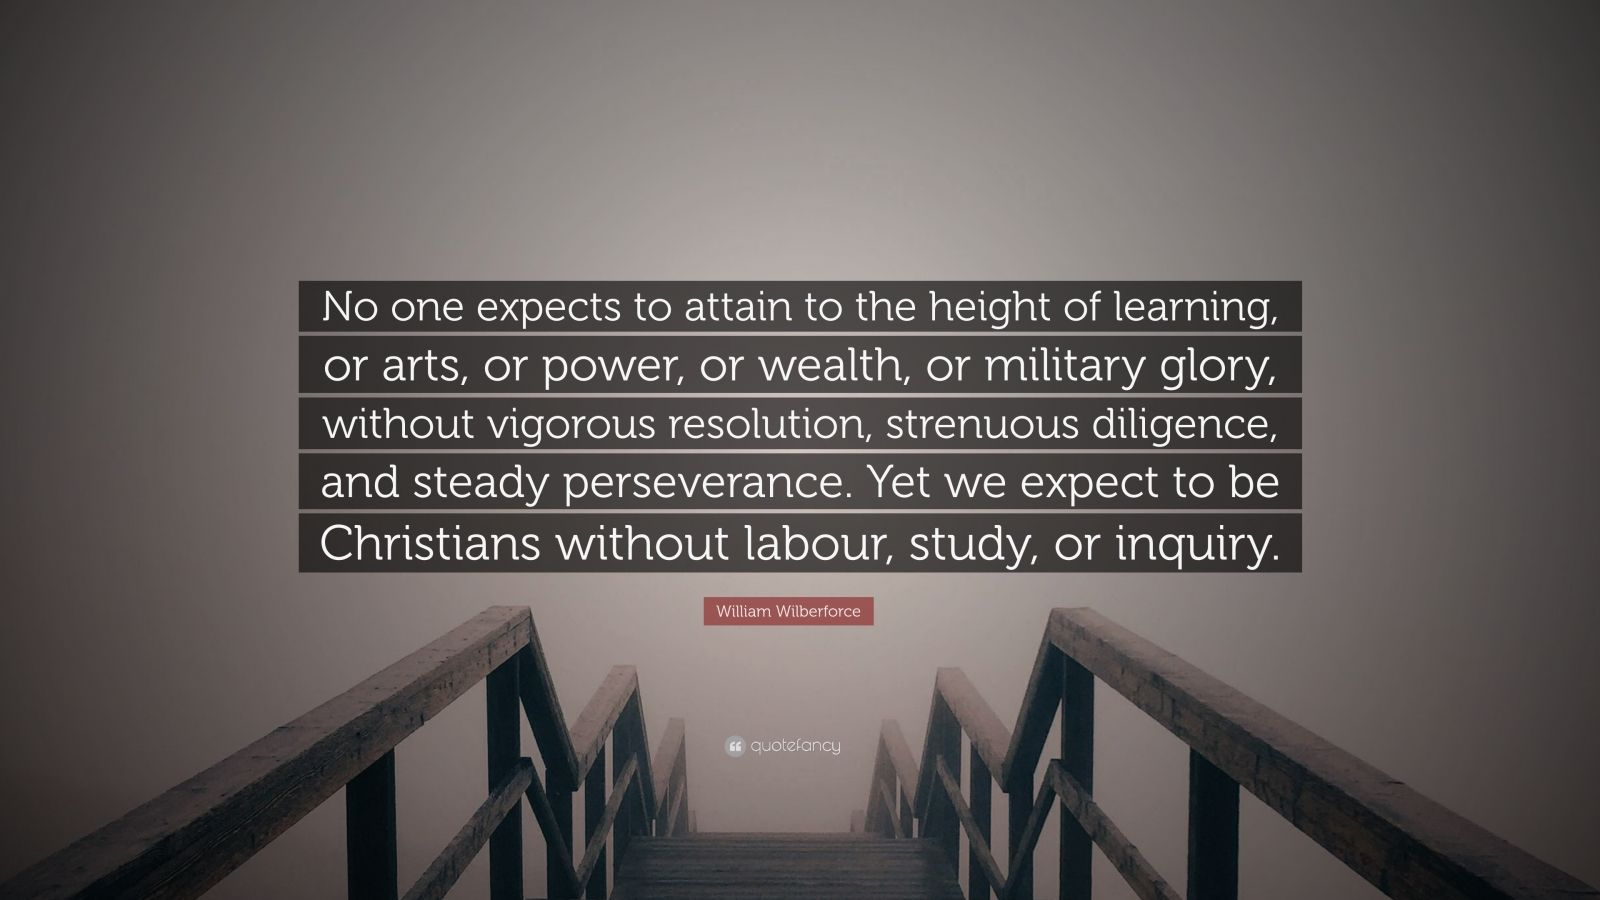 """William Wilberforce Quote: """"No one expects to attain to the height of learning, or arts, or power, or wealth, or military glory, without vigorous resolution, strenuous diligence, and steady perseverance. Yet we expect to be Christians without labour, study, or inquiry."""""""